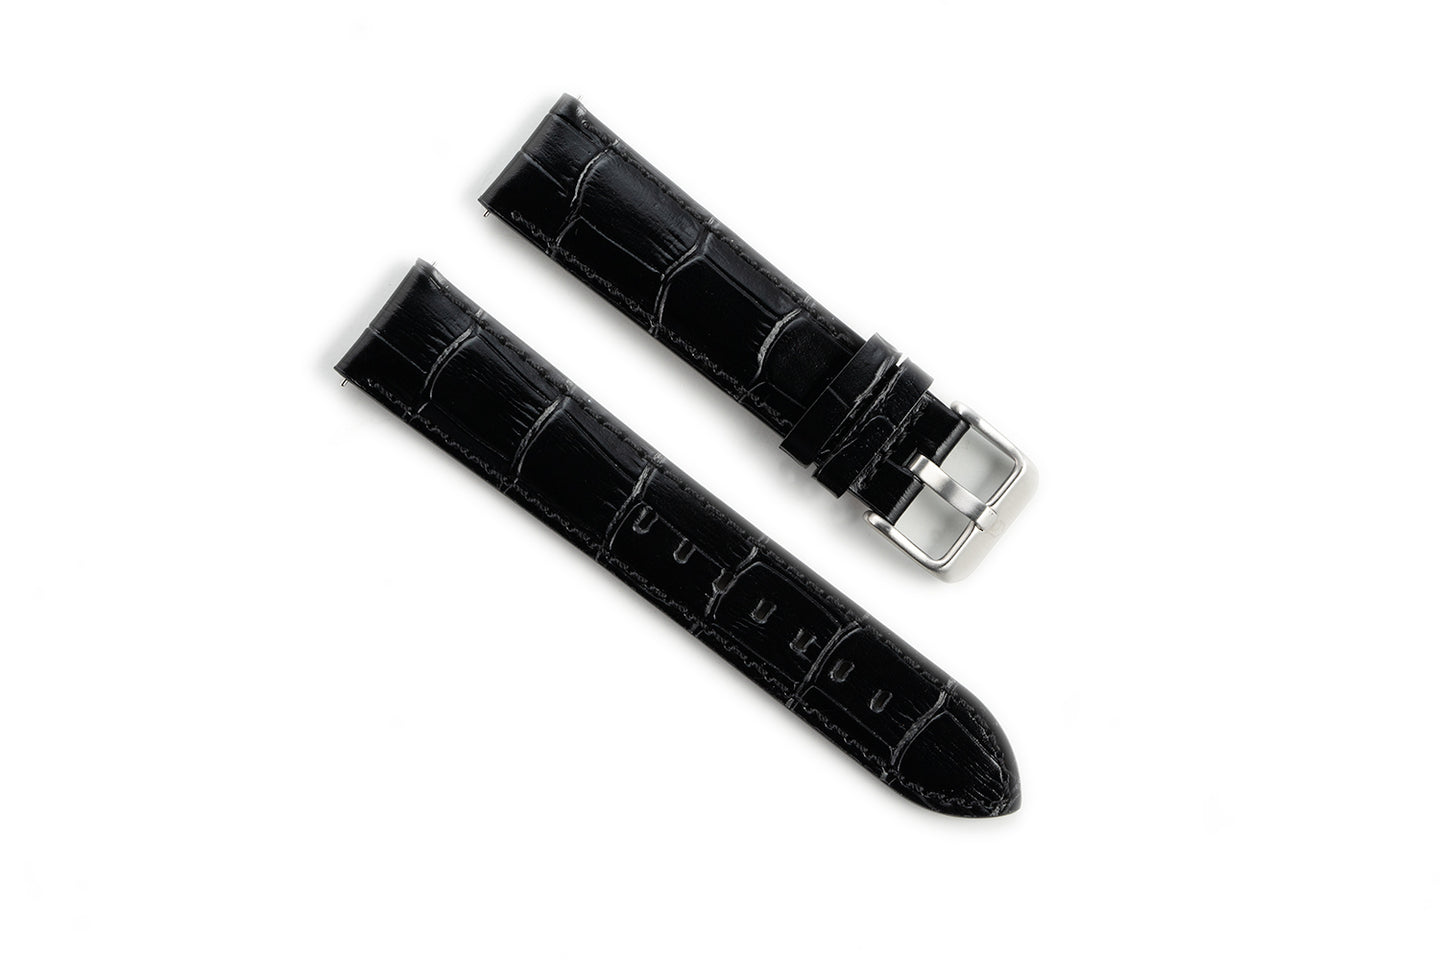 EONIQ Alligator Straps -- Onyx Black